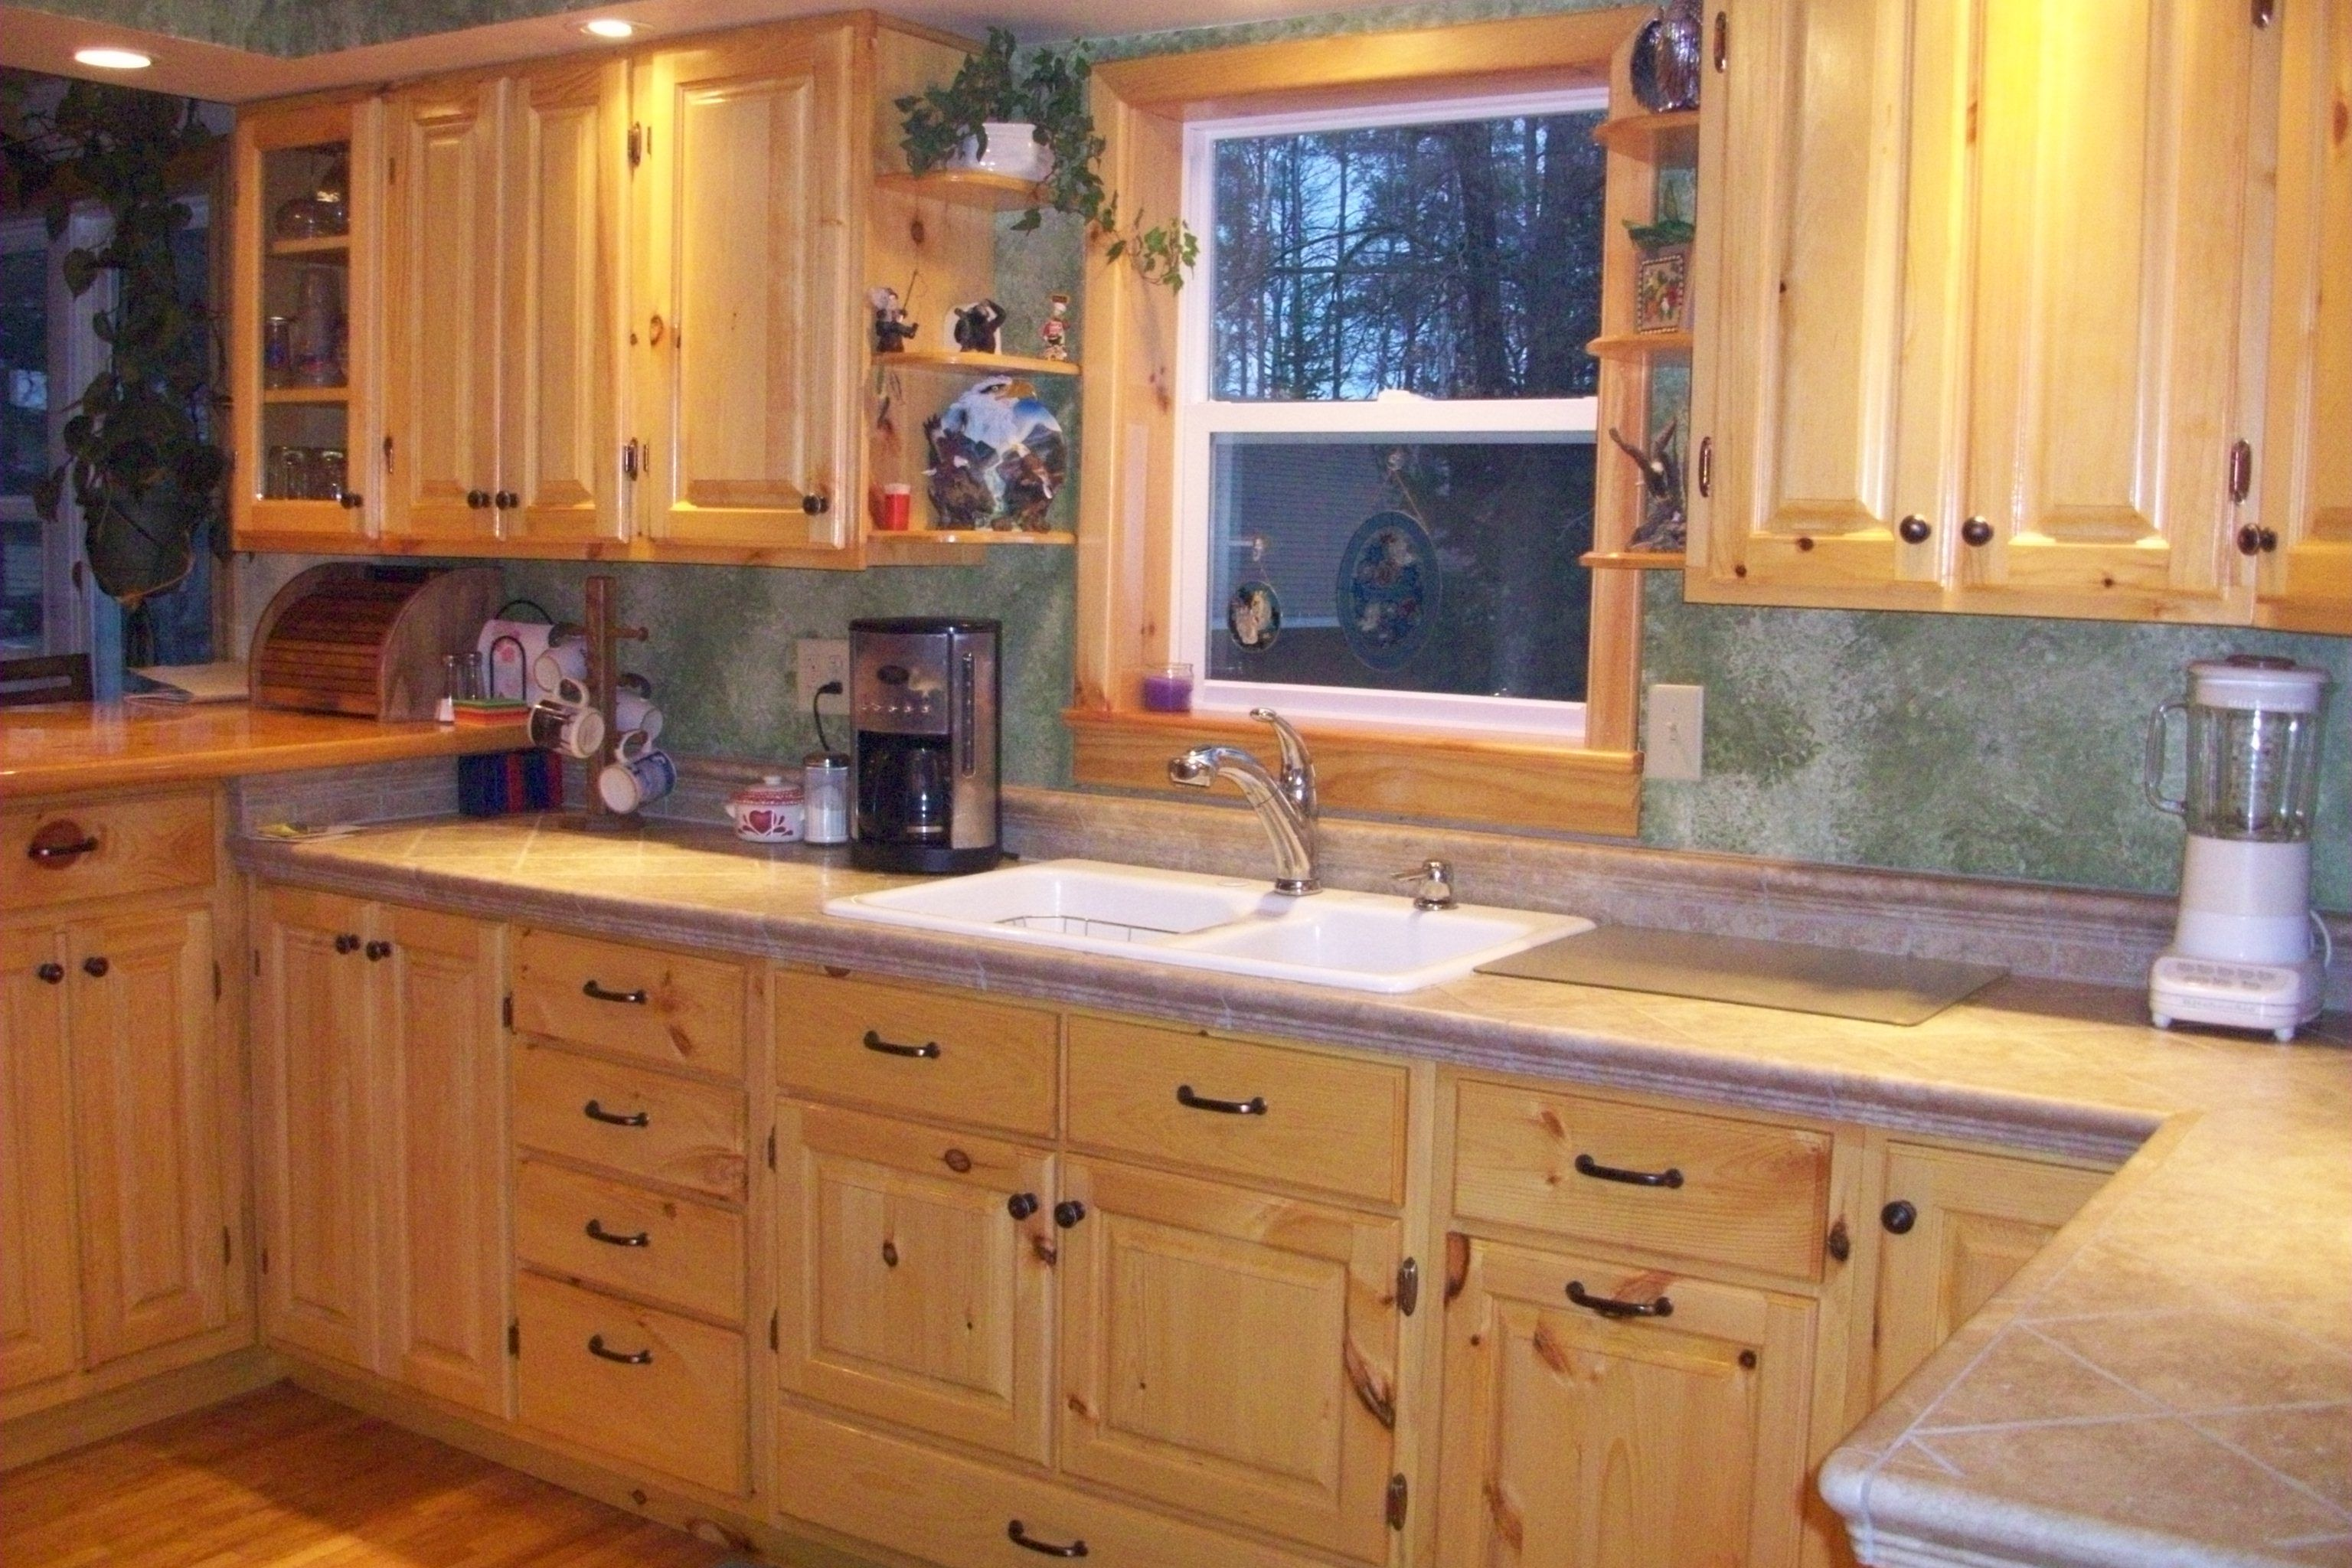 Pine Kitchen Cabinets For Kitchens With Knotty Pine Cabinets Houses Pinterest Paint